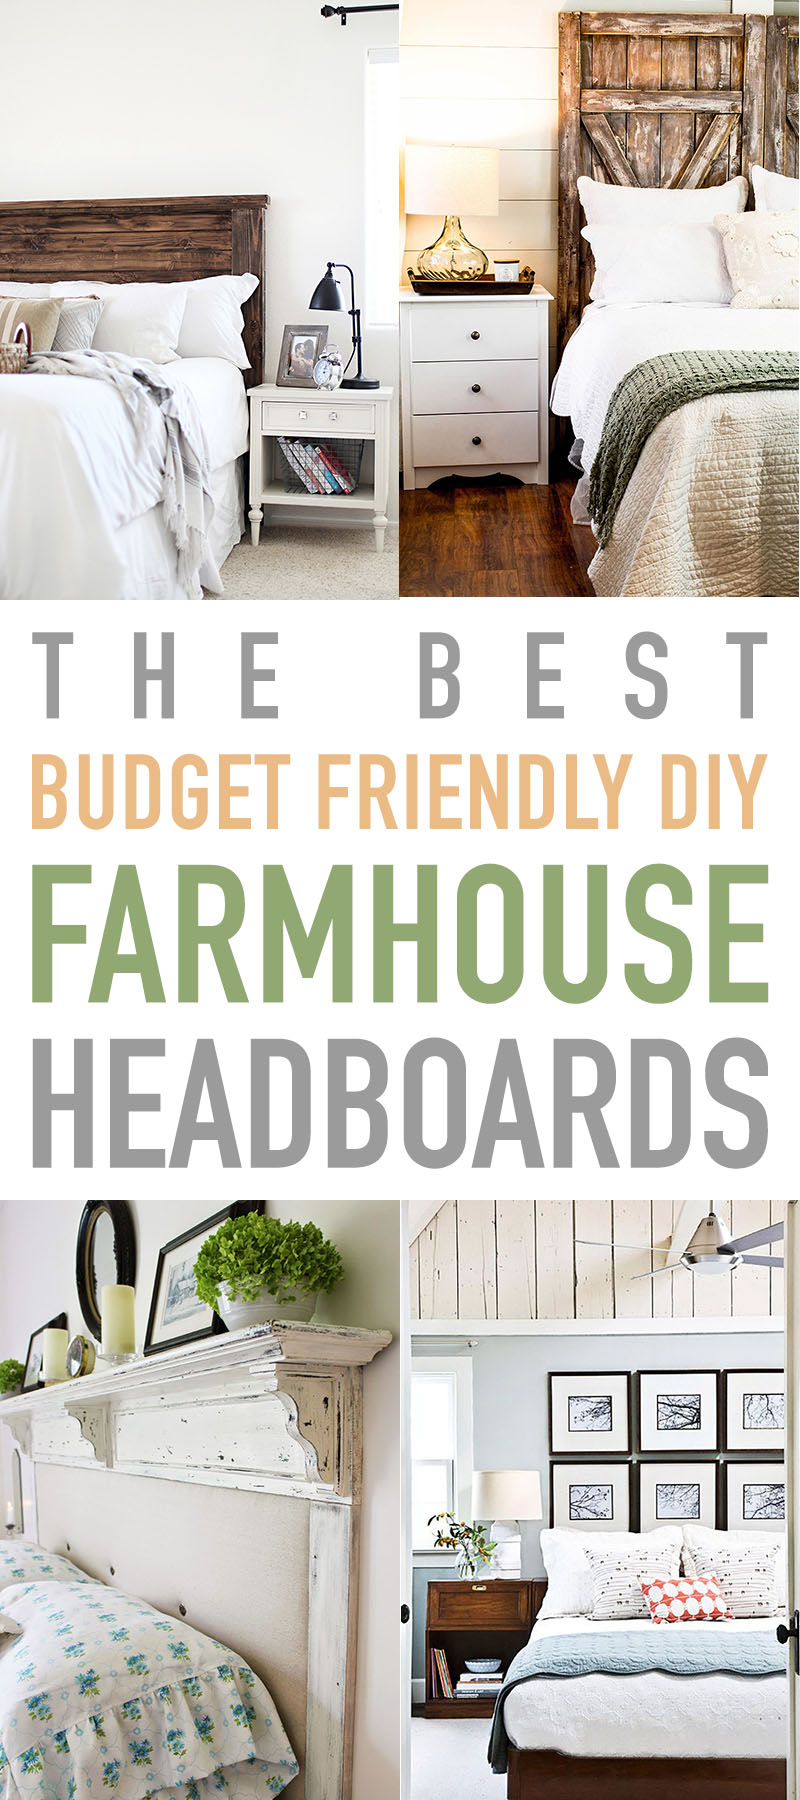 The Best Budget Friendly DIY Farmhouse Headboards are waiting for you to check out!  They are fabulous and all so doable and affordable!